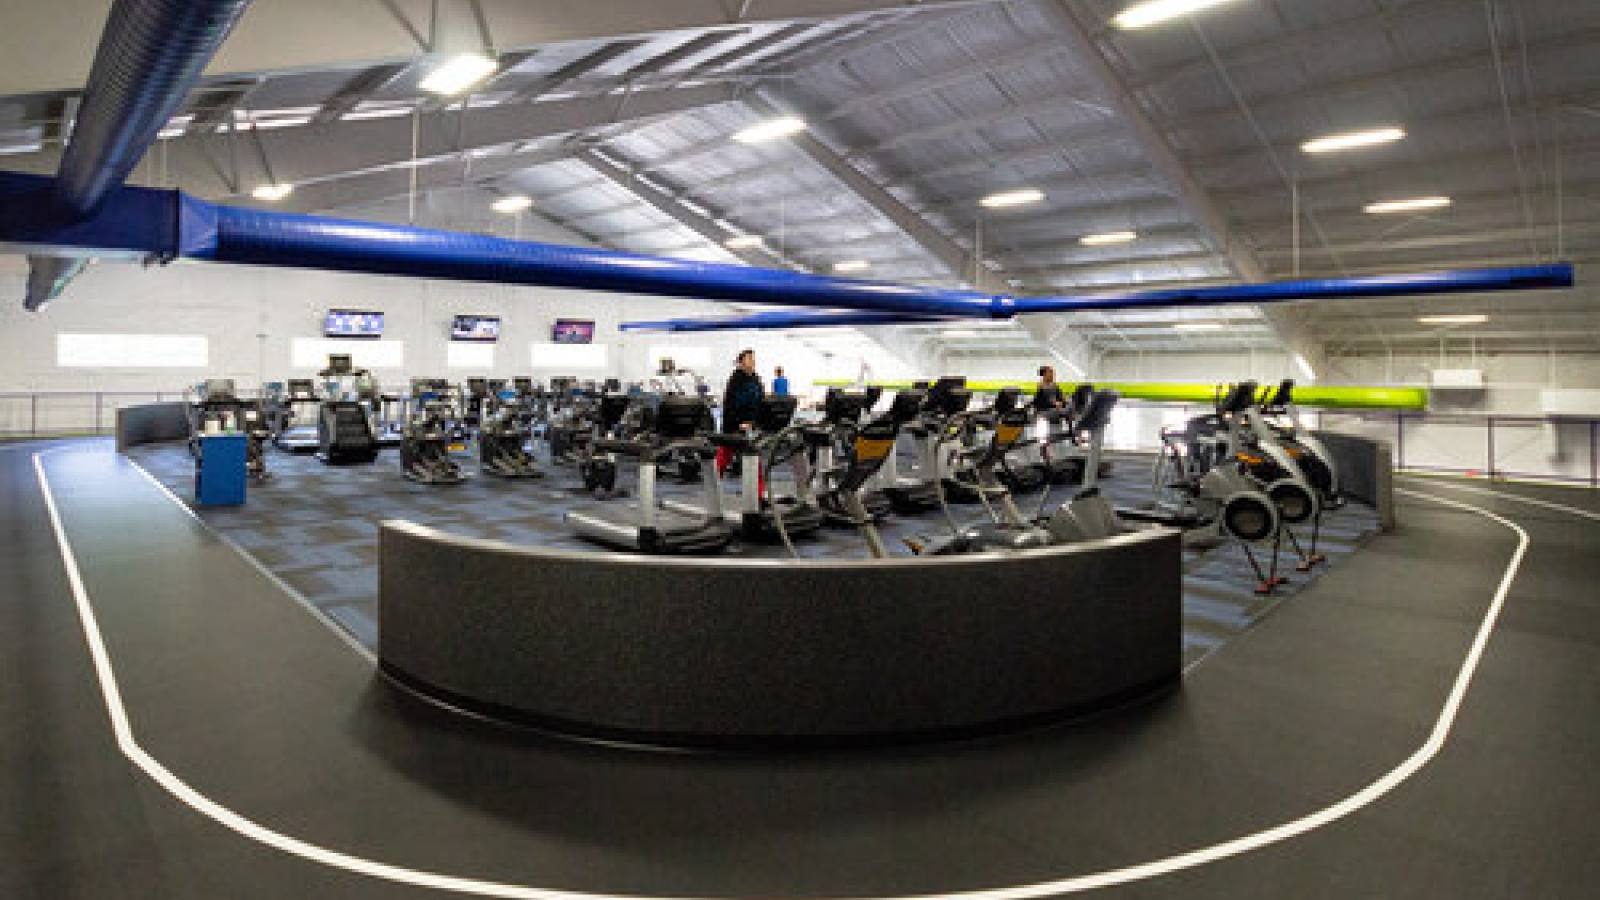 fitness center interior photo